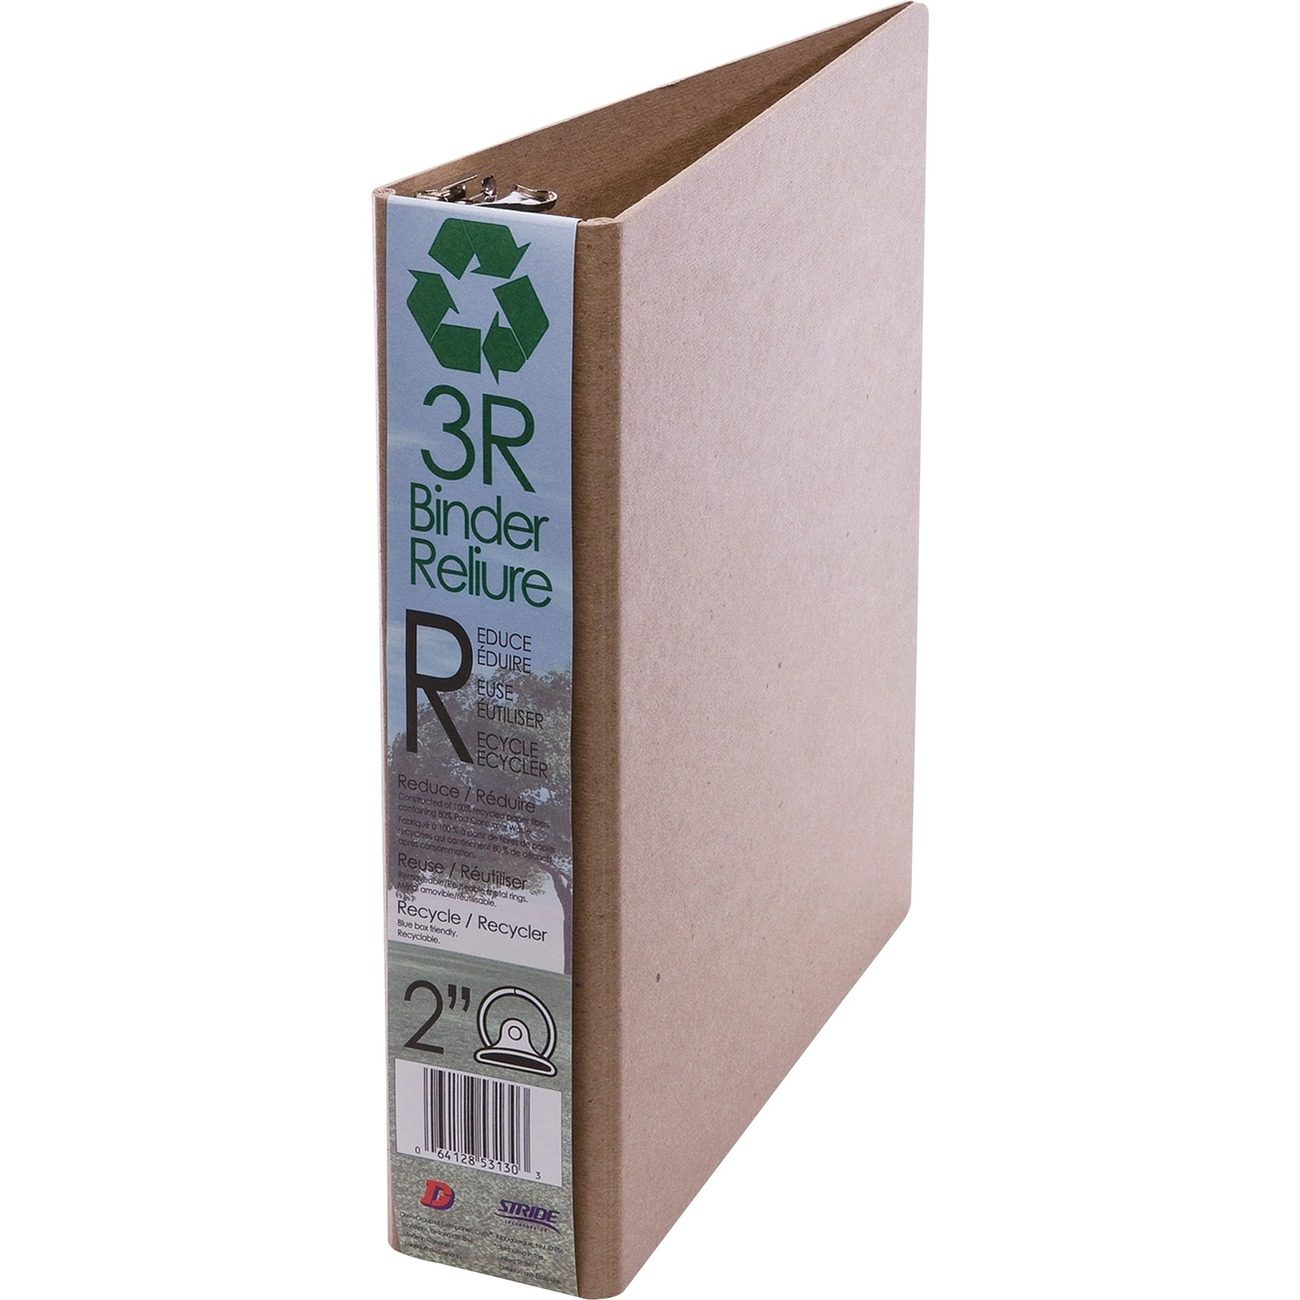 Three Rings Office Steampunk Threering Binder With Exposed Rivets Features Detachable Rings So You Can Easily Remove The Rings And Reuse Them In New Case Decoist Evergreen Stationers Ltd Office Supplies Binders